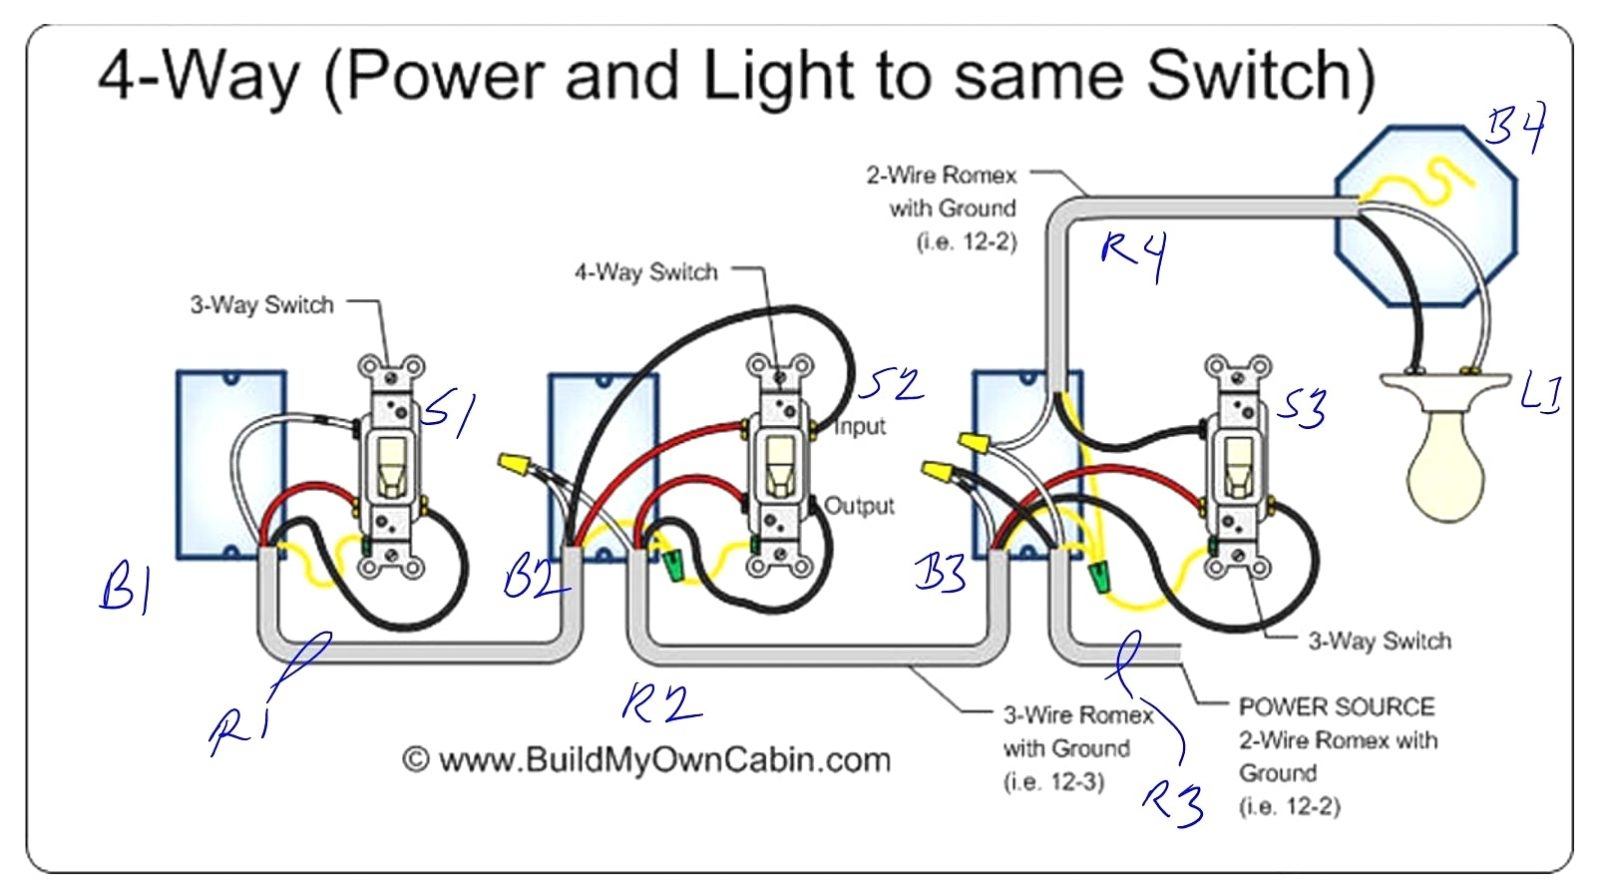 hight resolution of lutron 3 way dimmer wiring diagram lutron 4 way dimmer wiring diagram luxury lutron maestro